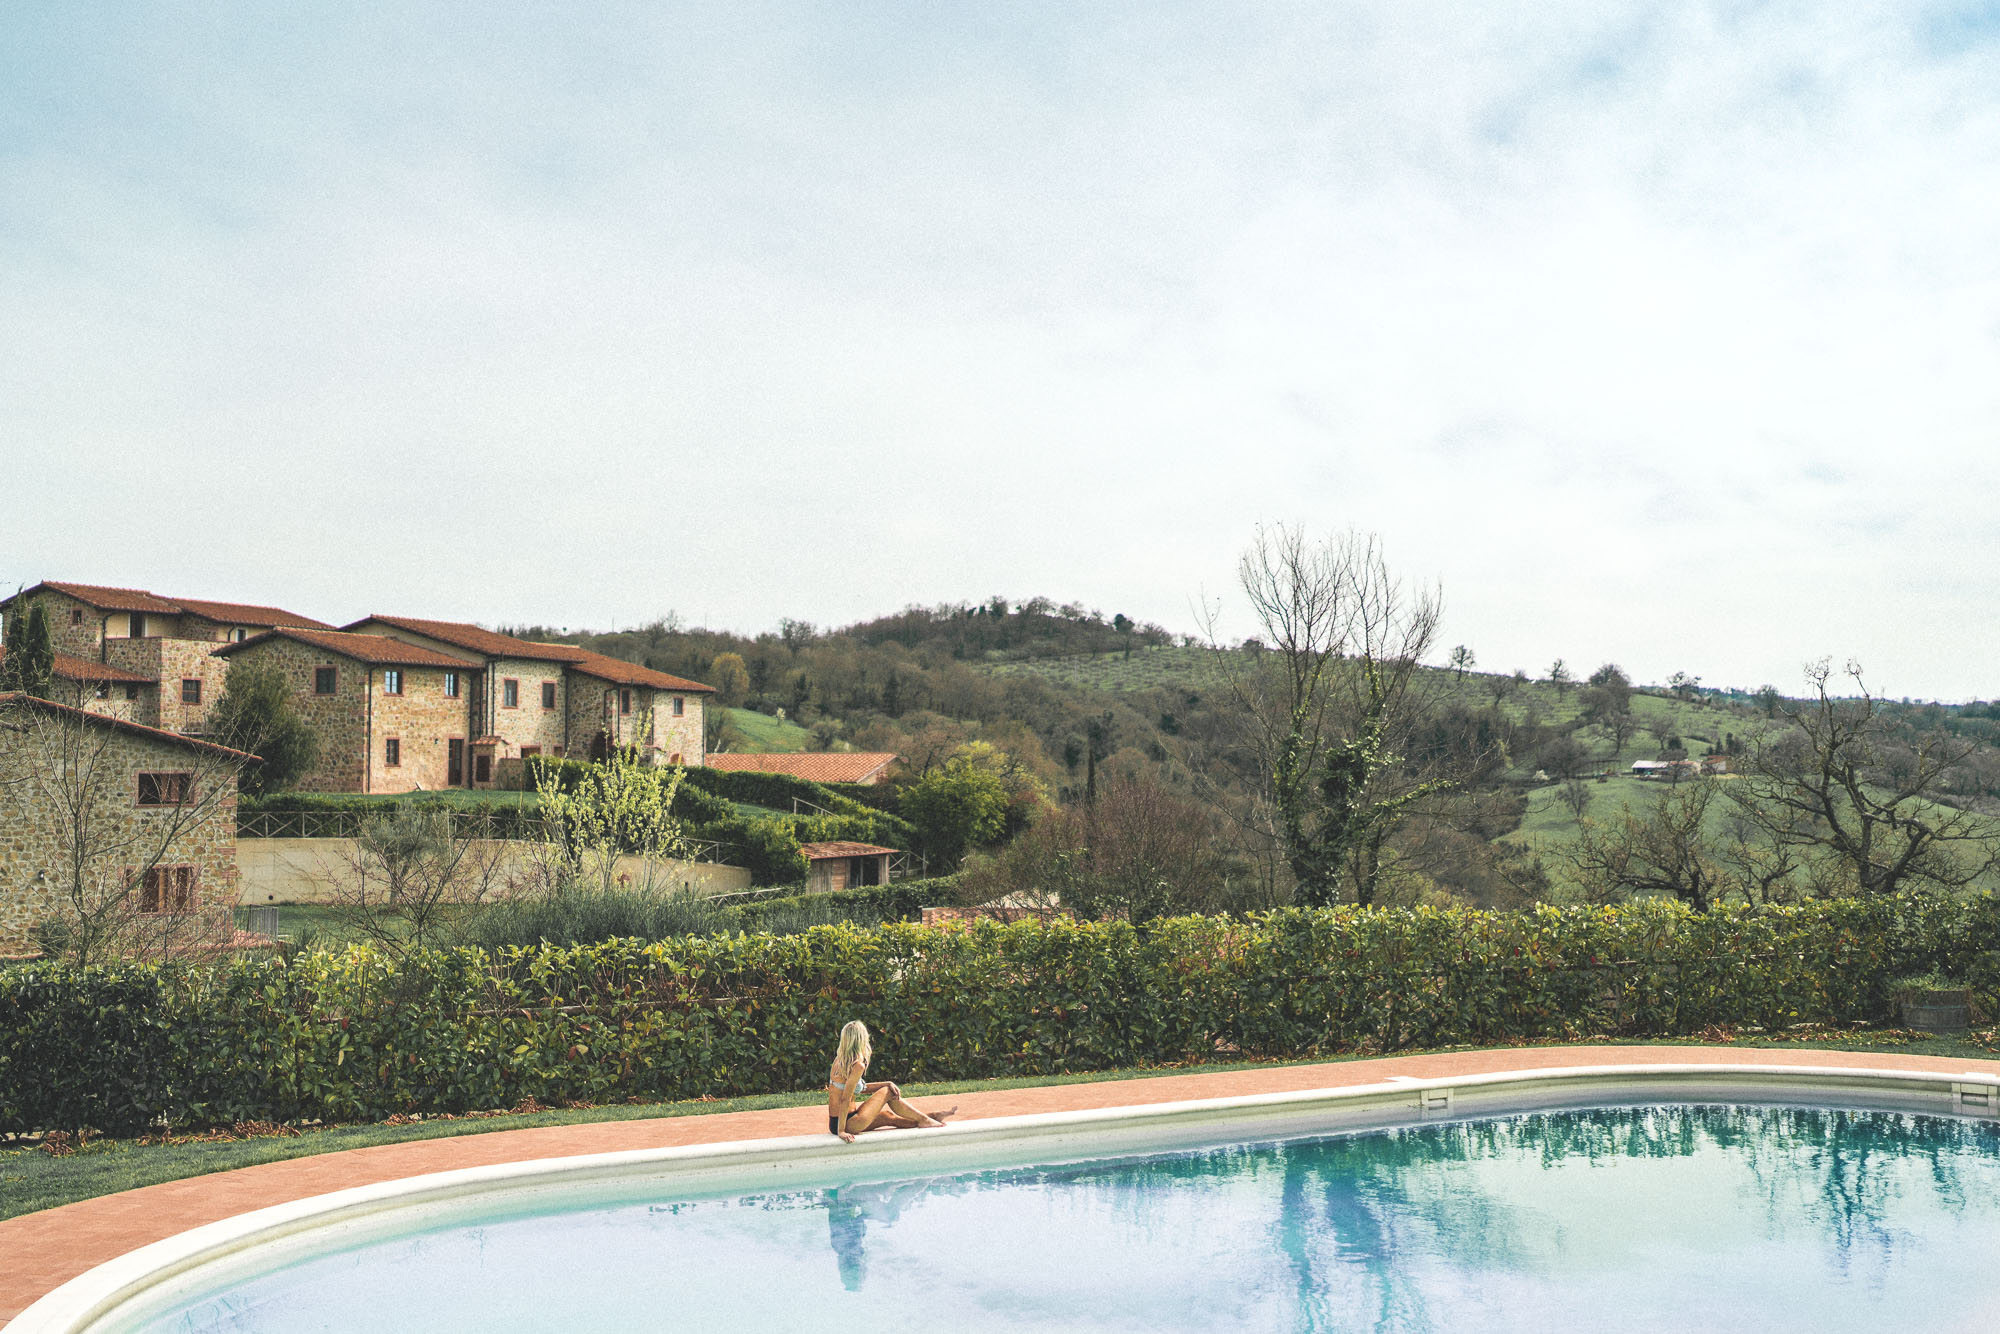 Borgo Case Bardi tuscan villa with a pool in southern Tuscany, Italy